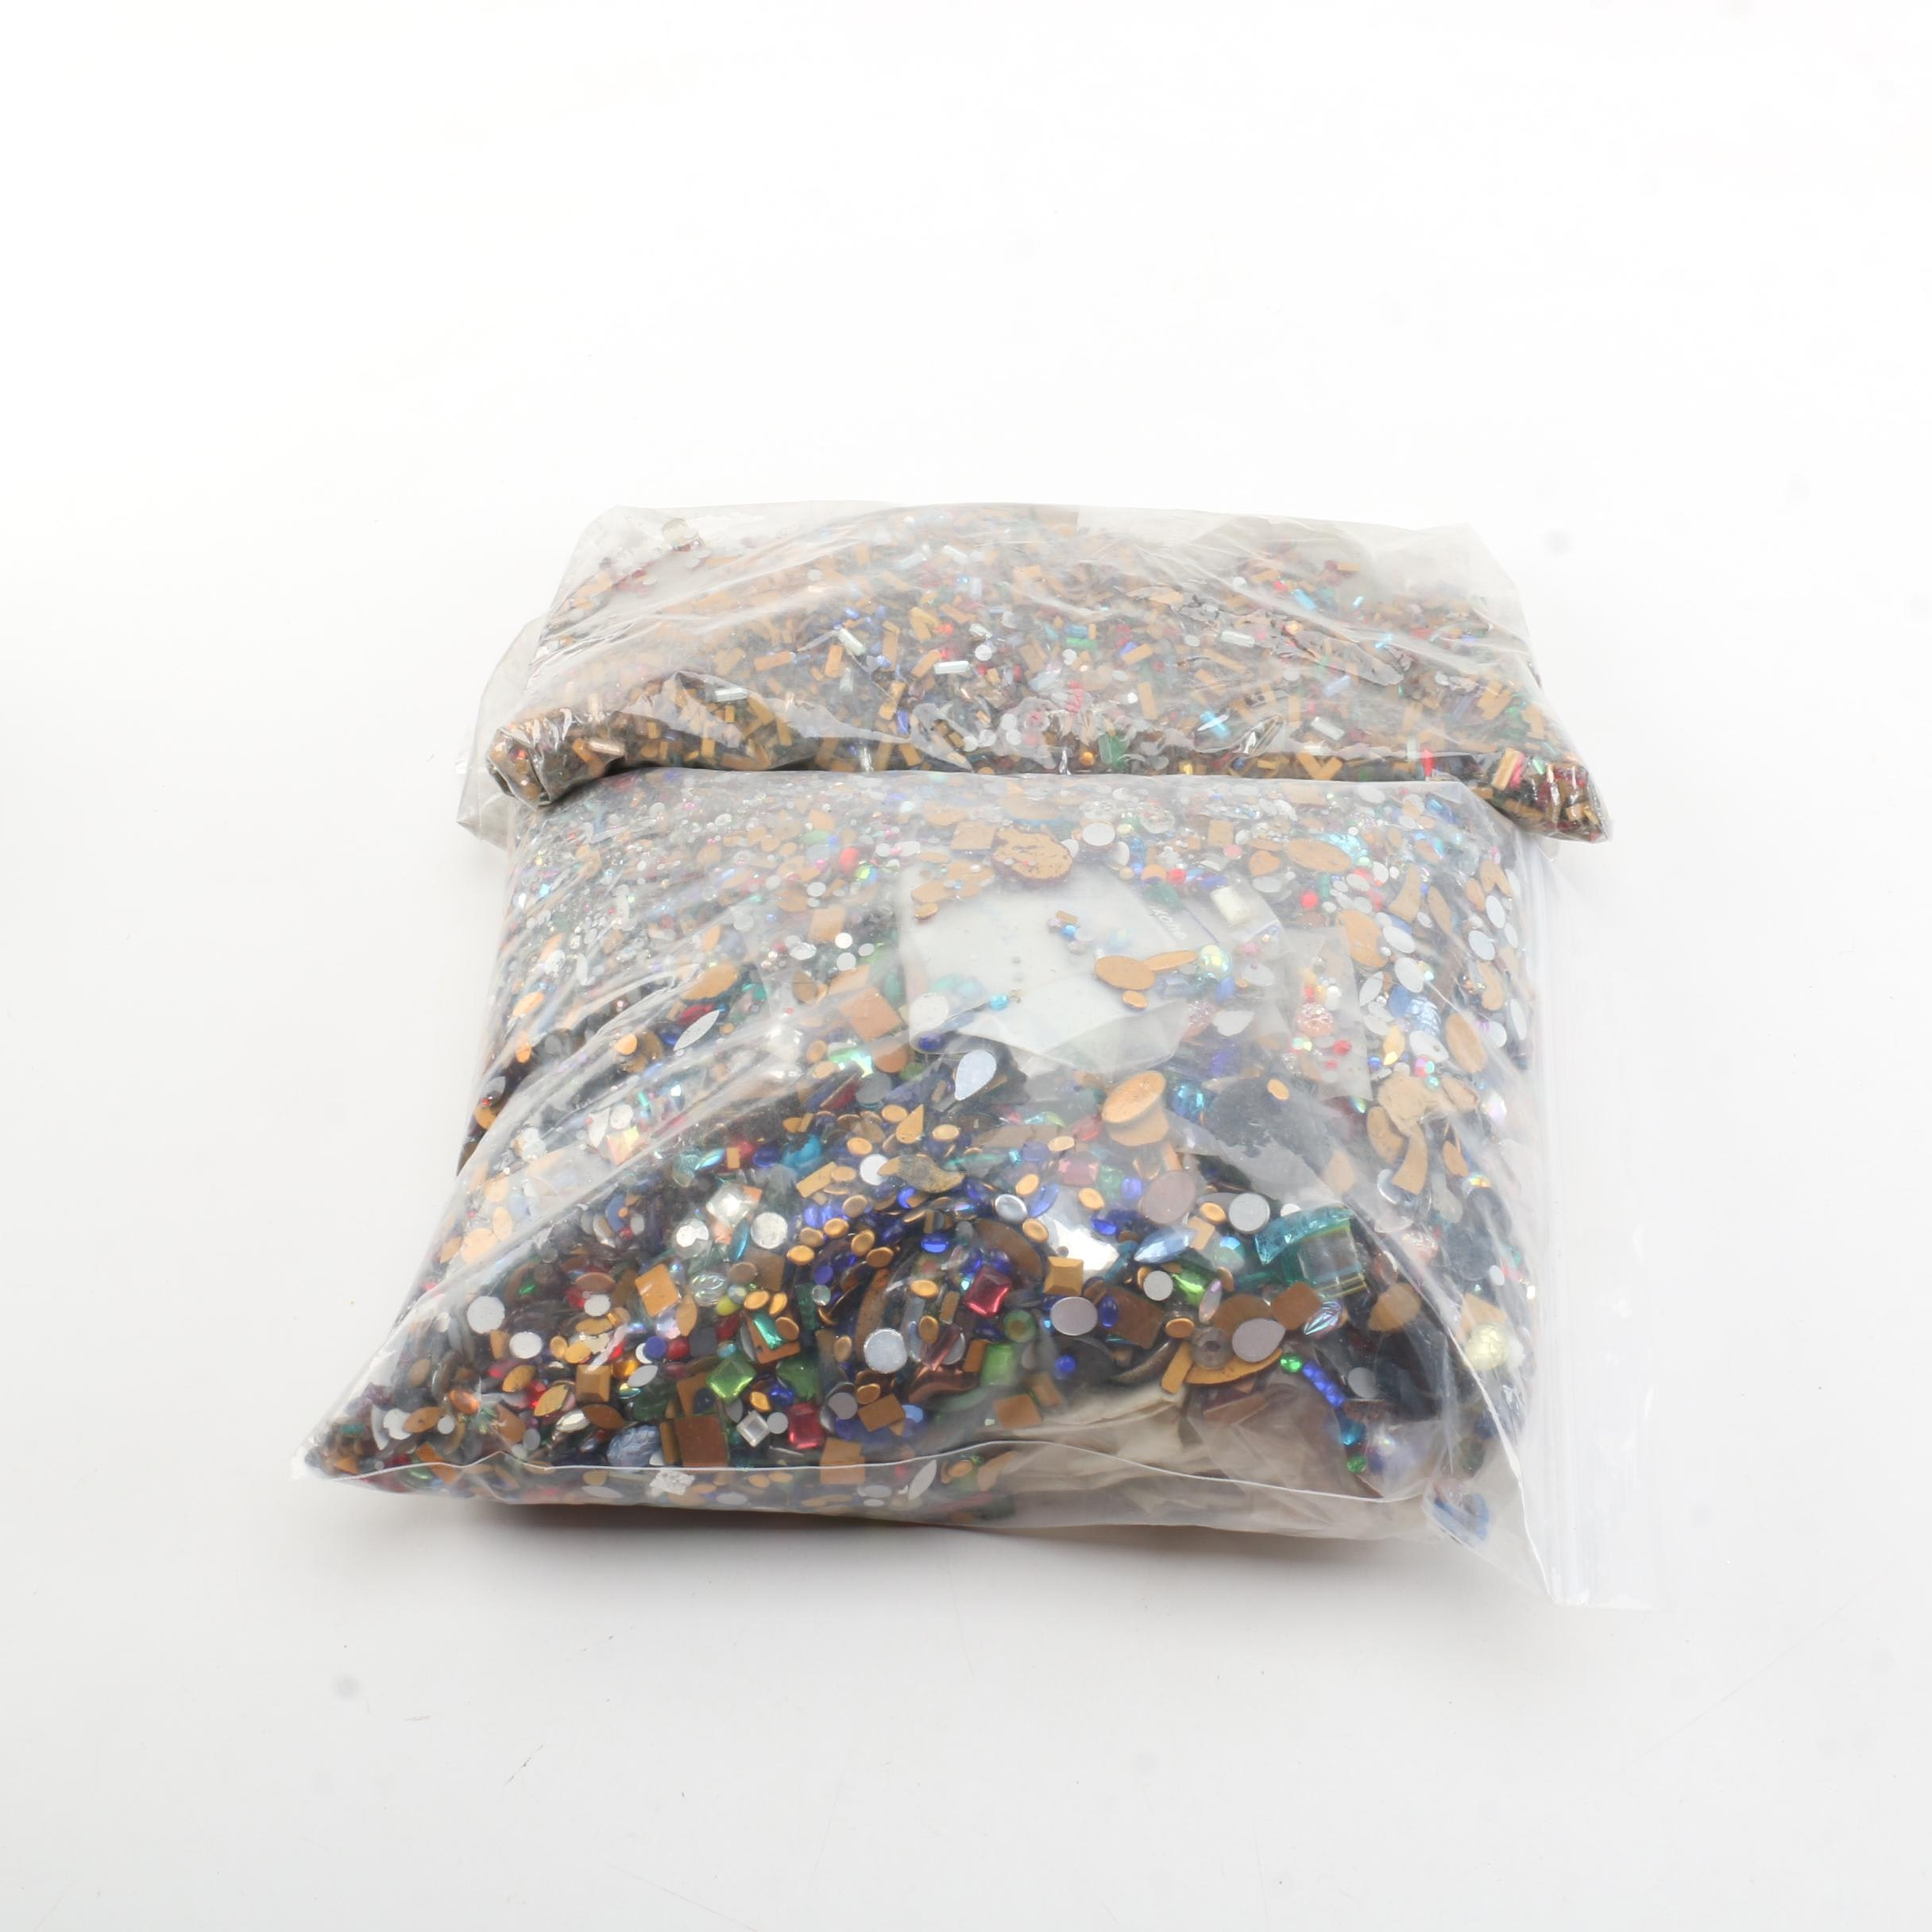 Collection of Loose Rhinestones